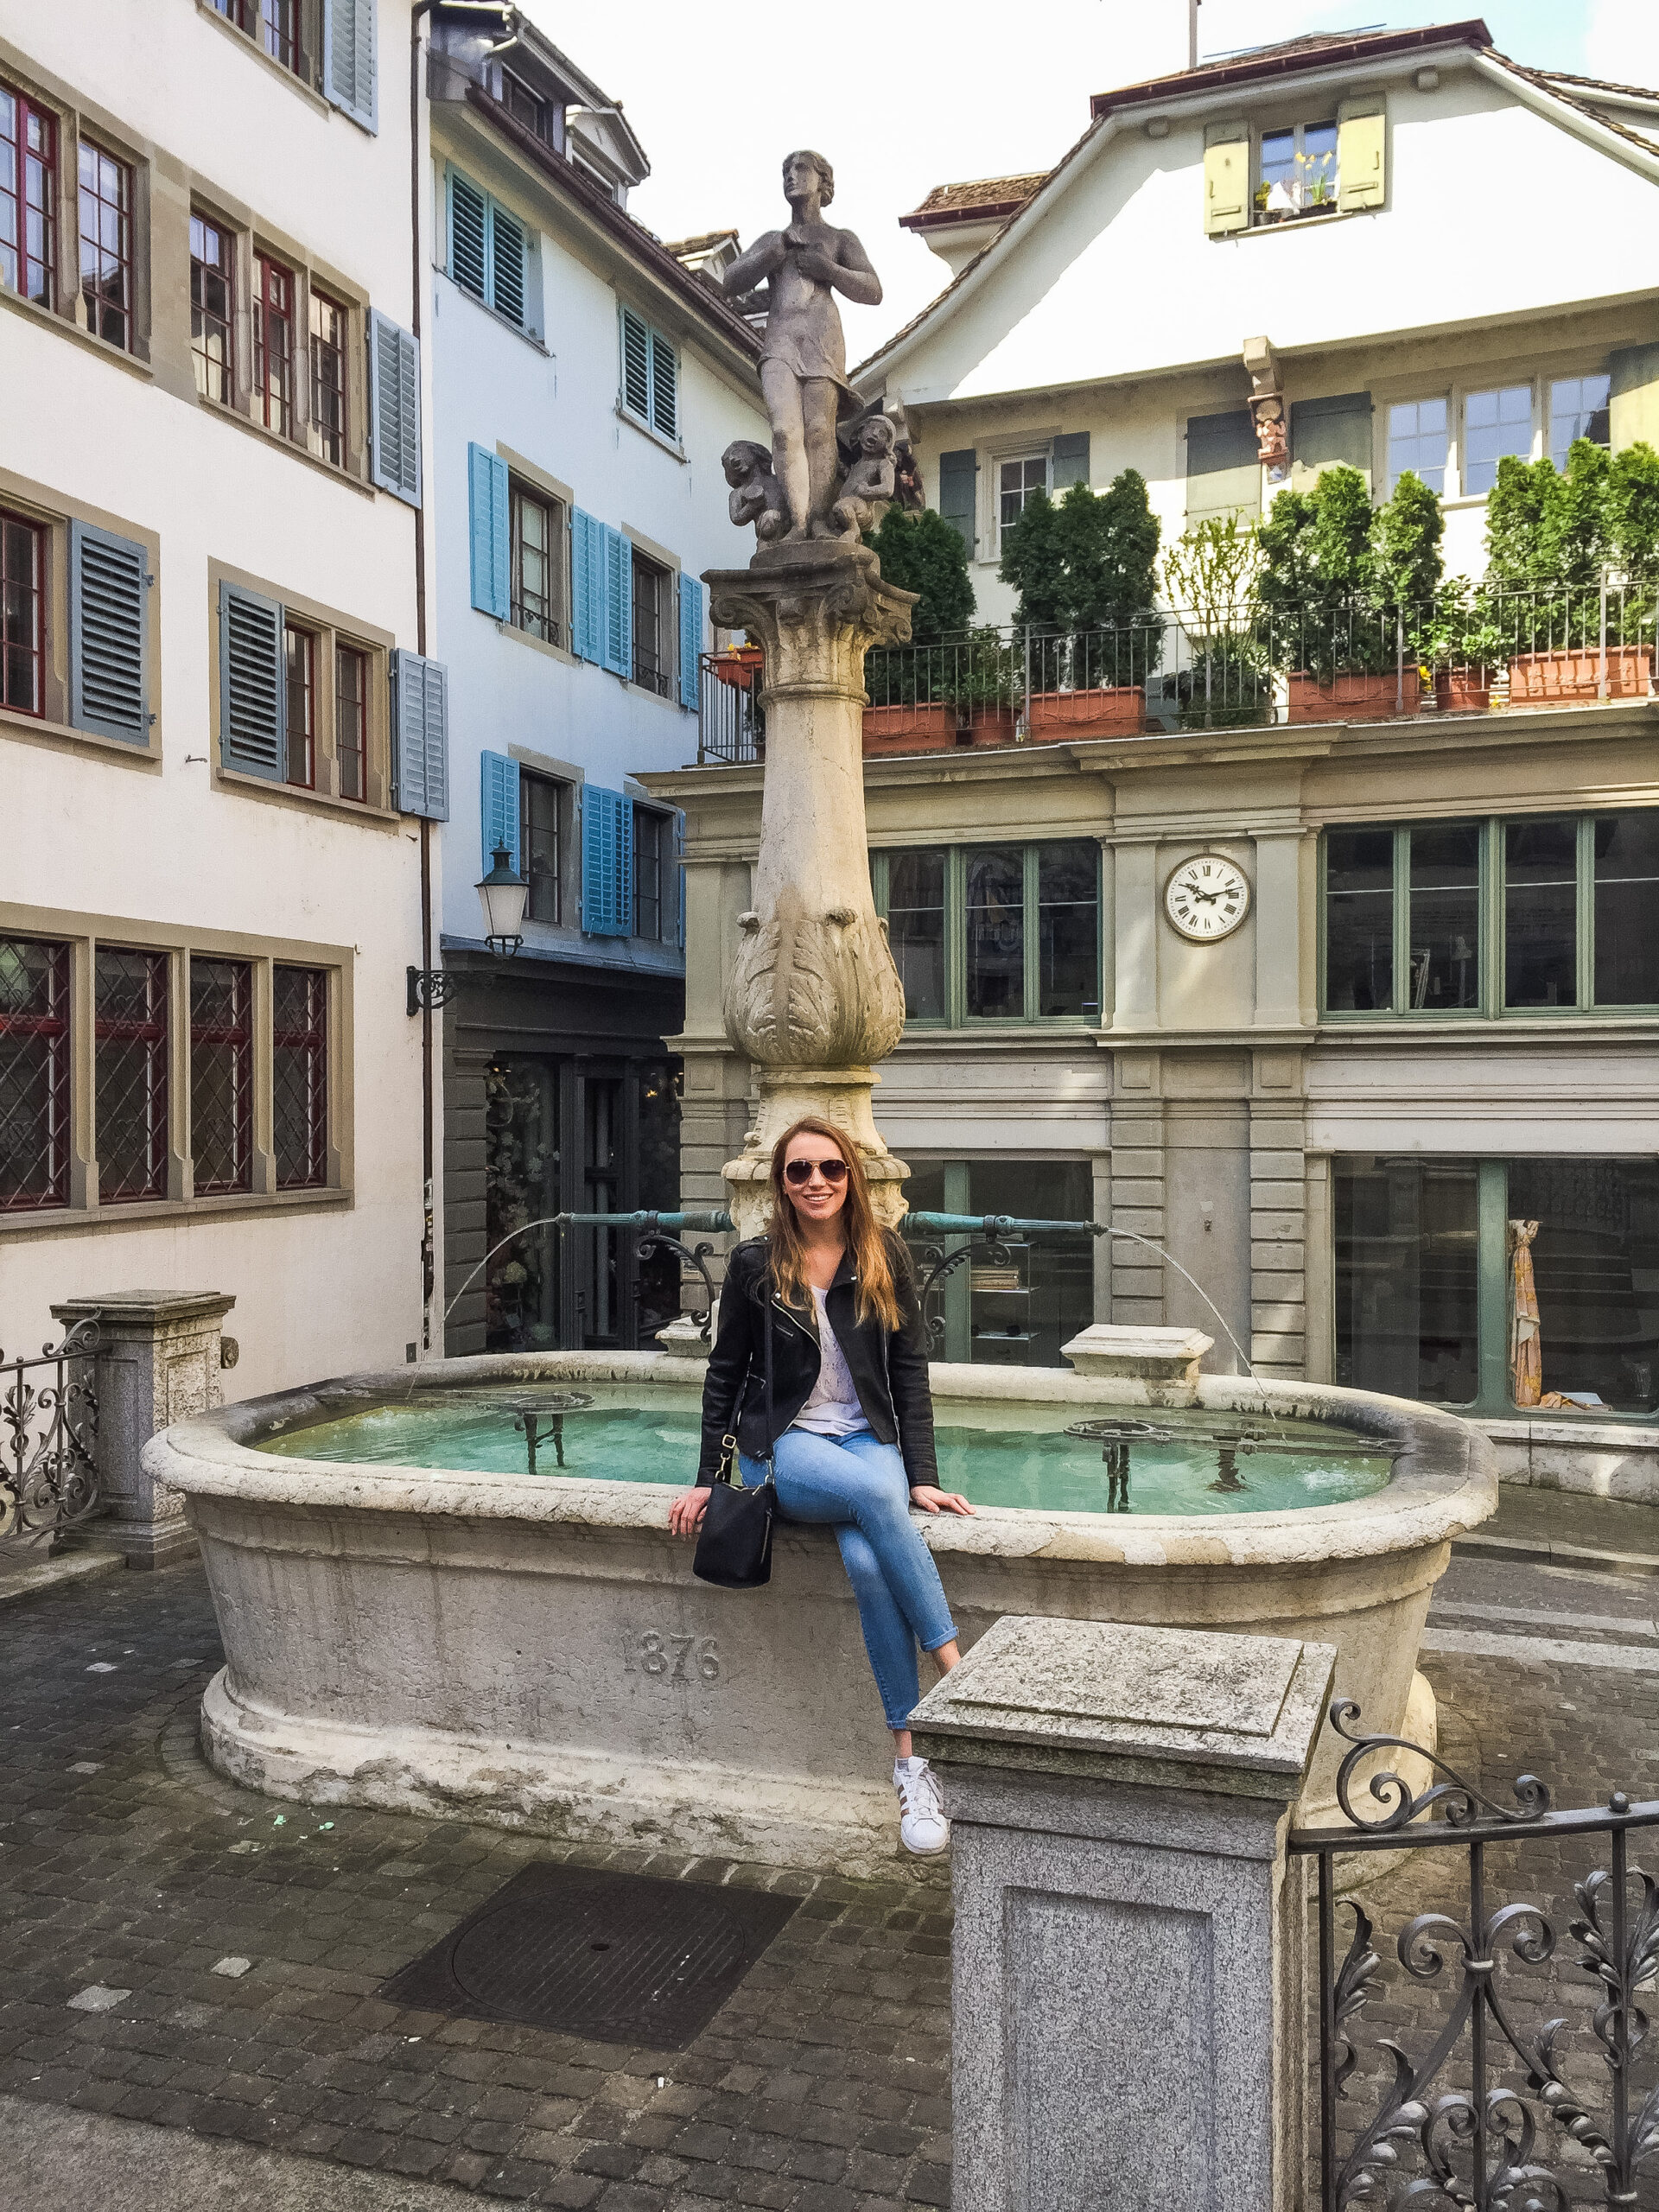 The old town streets of Zürich, Switzerland are a fairytale!